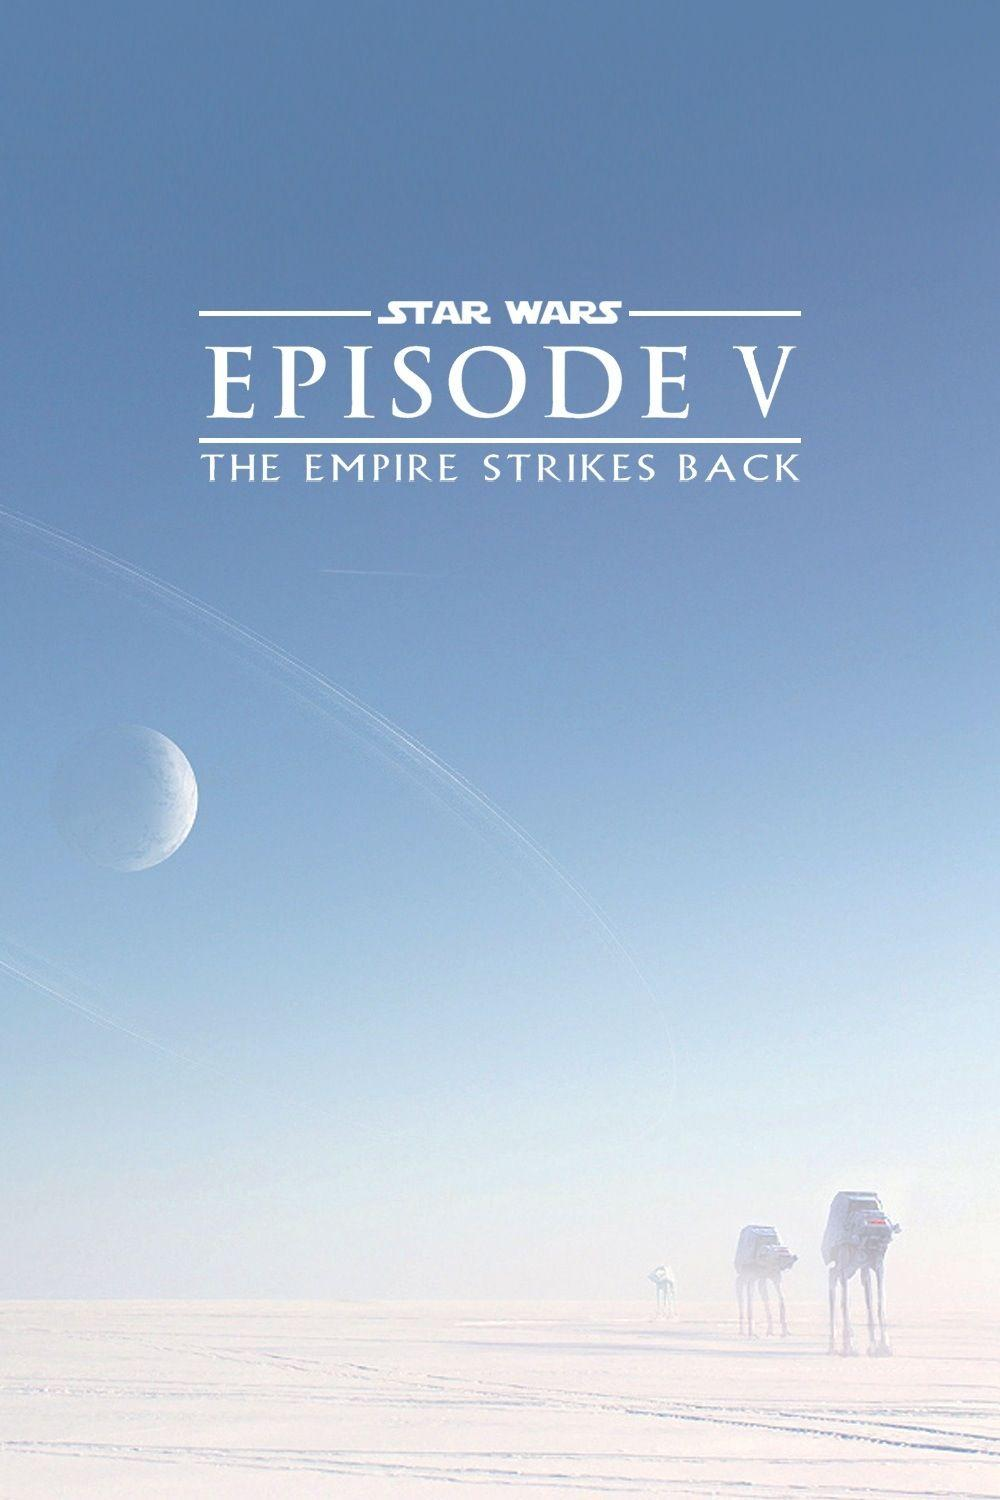 Beautiful Star Wars Empire Iphone Wallpaper Images